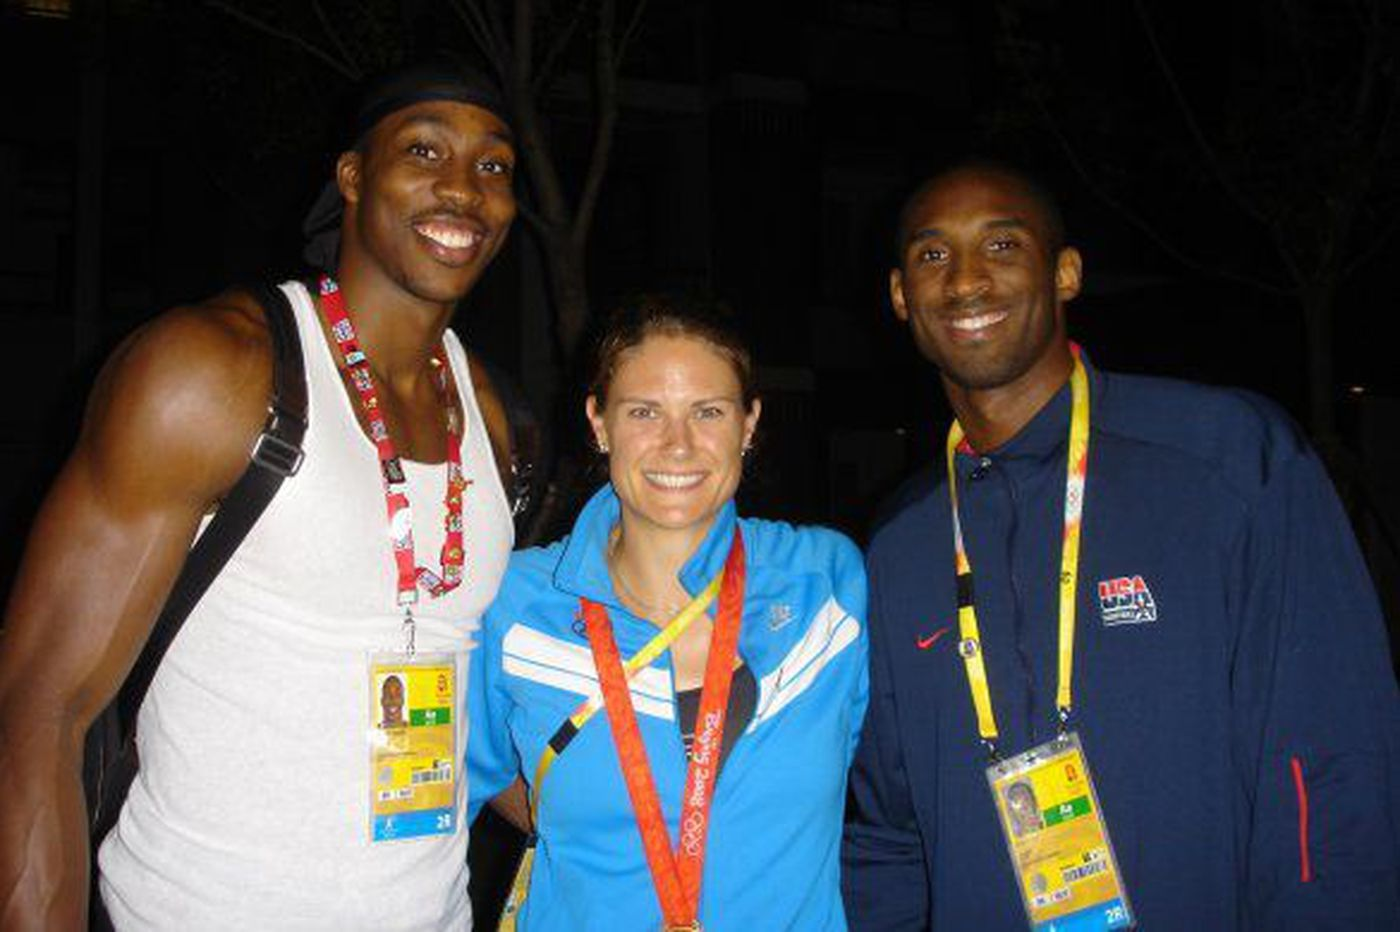 Olympic gold medalist Susan Francia on the time she sat next to Kobe Bryant on the bus